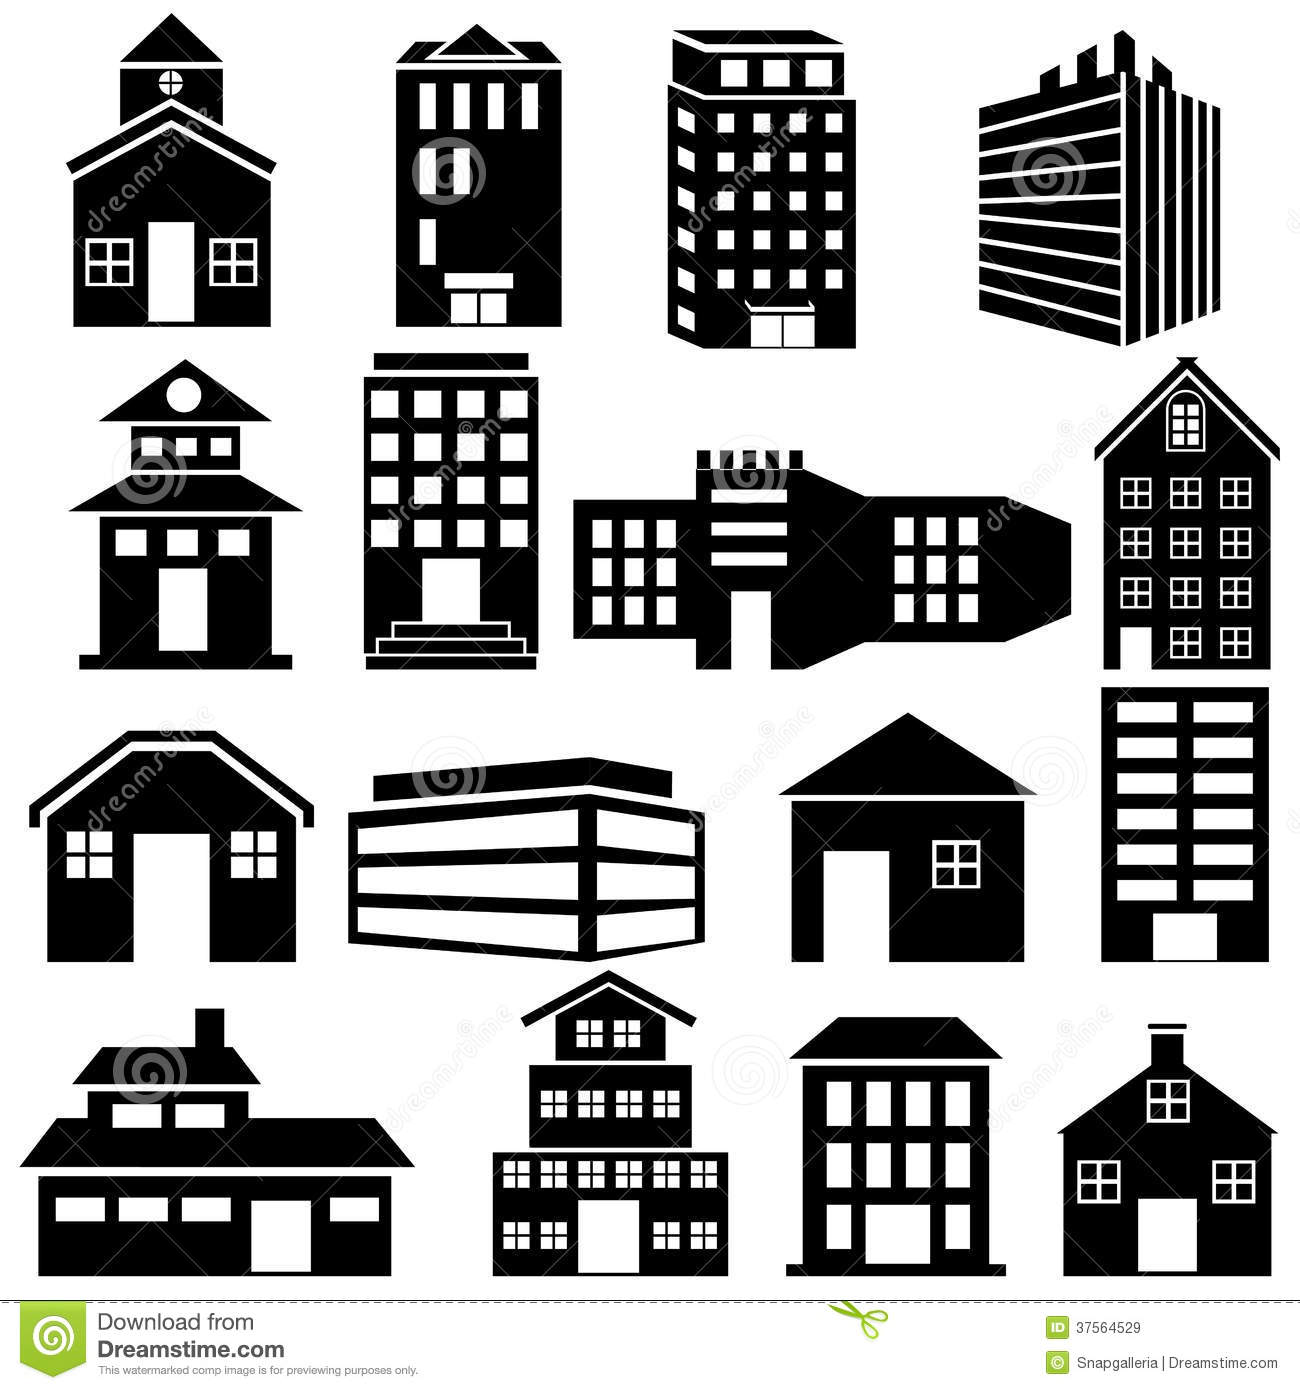 Building clipart vector free download svg transparent download Building clipart vector free download - ClipartFest svg transparent download